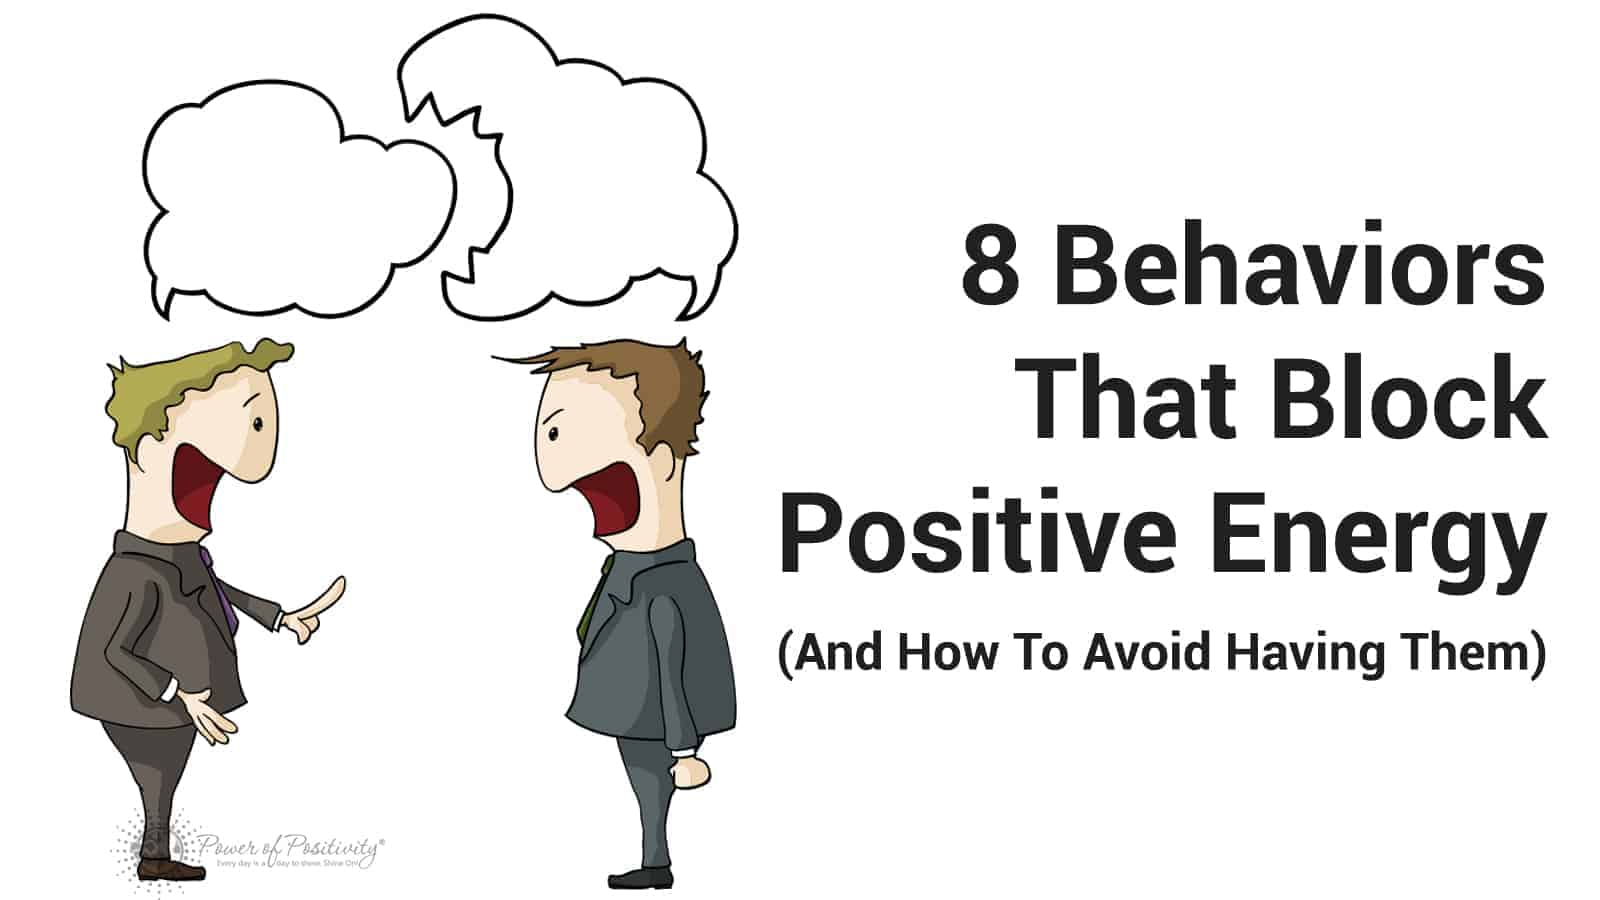 8 Behaviors That Block Positive Energy And How To Avoid Having Them